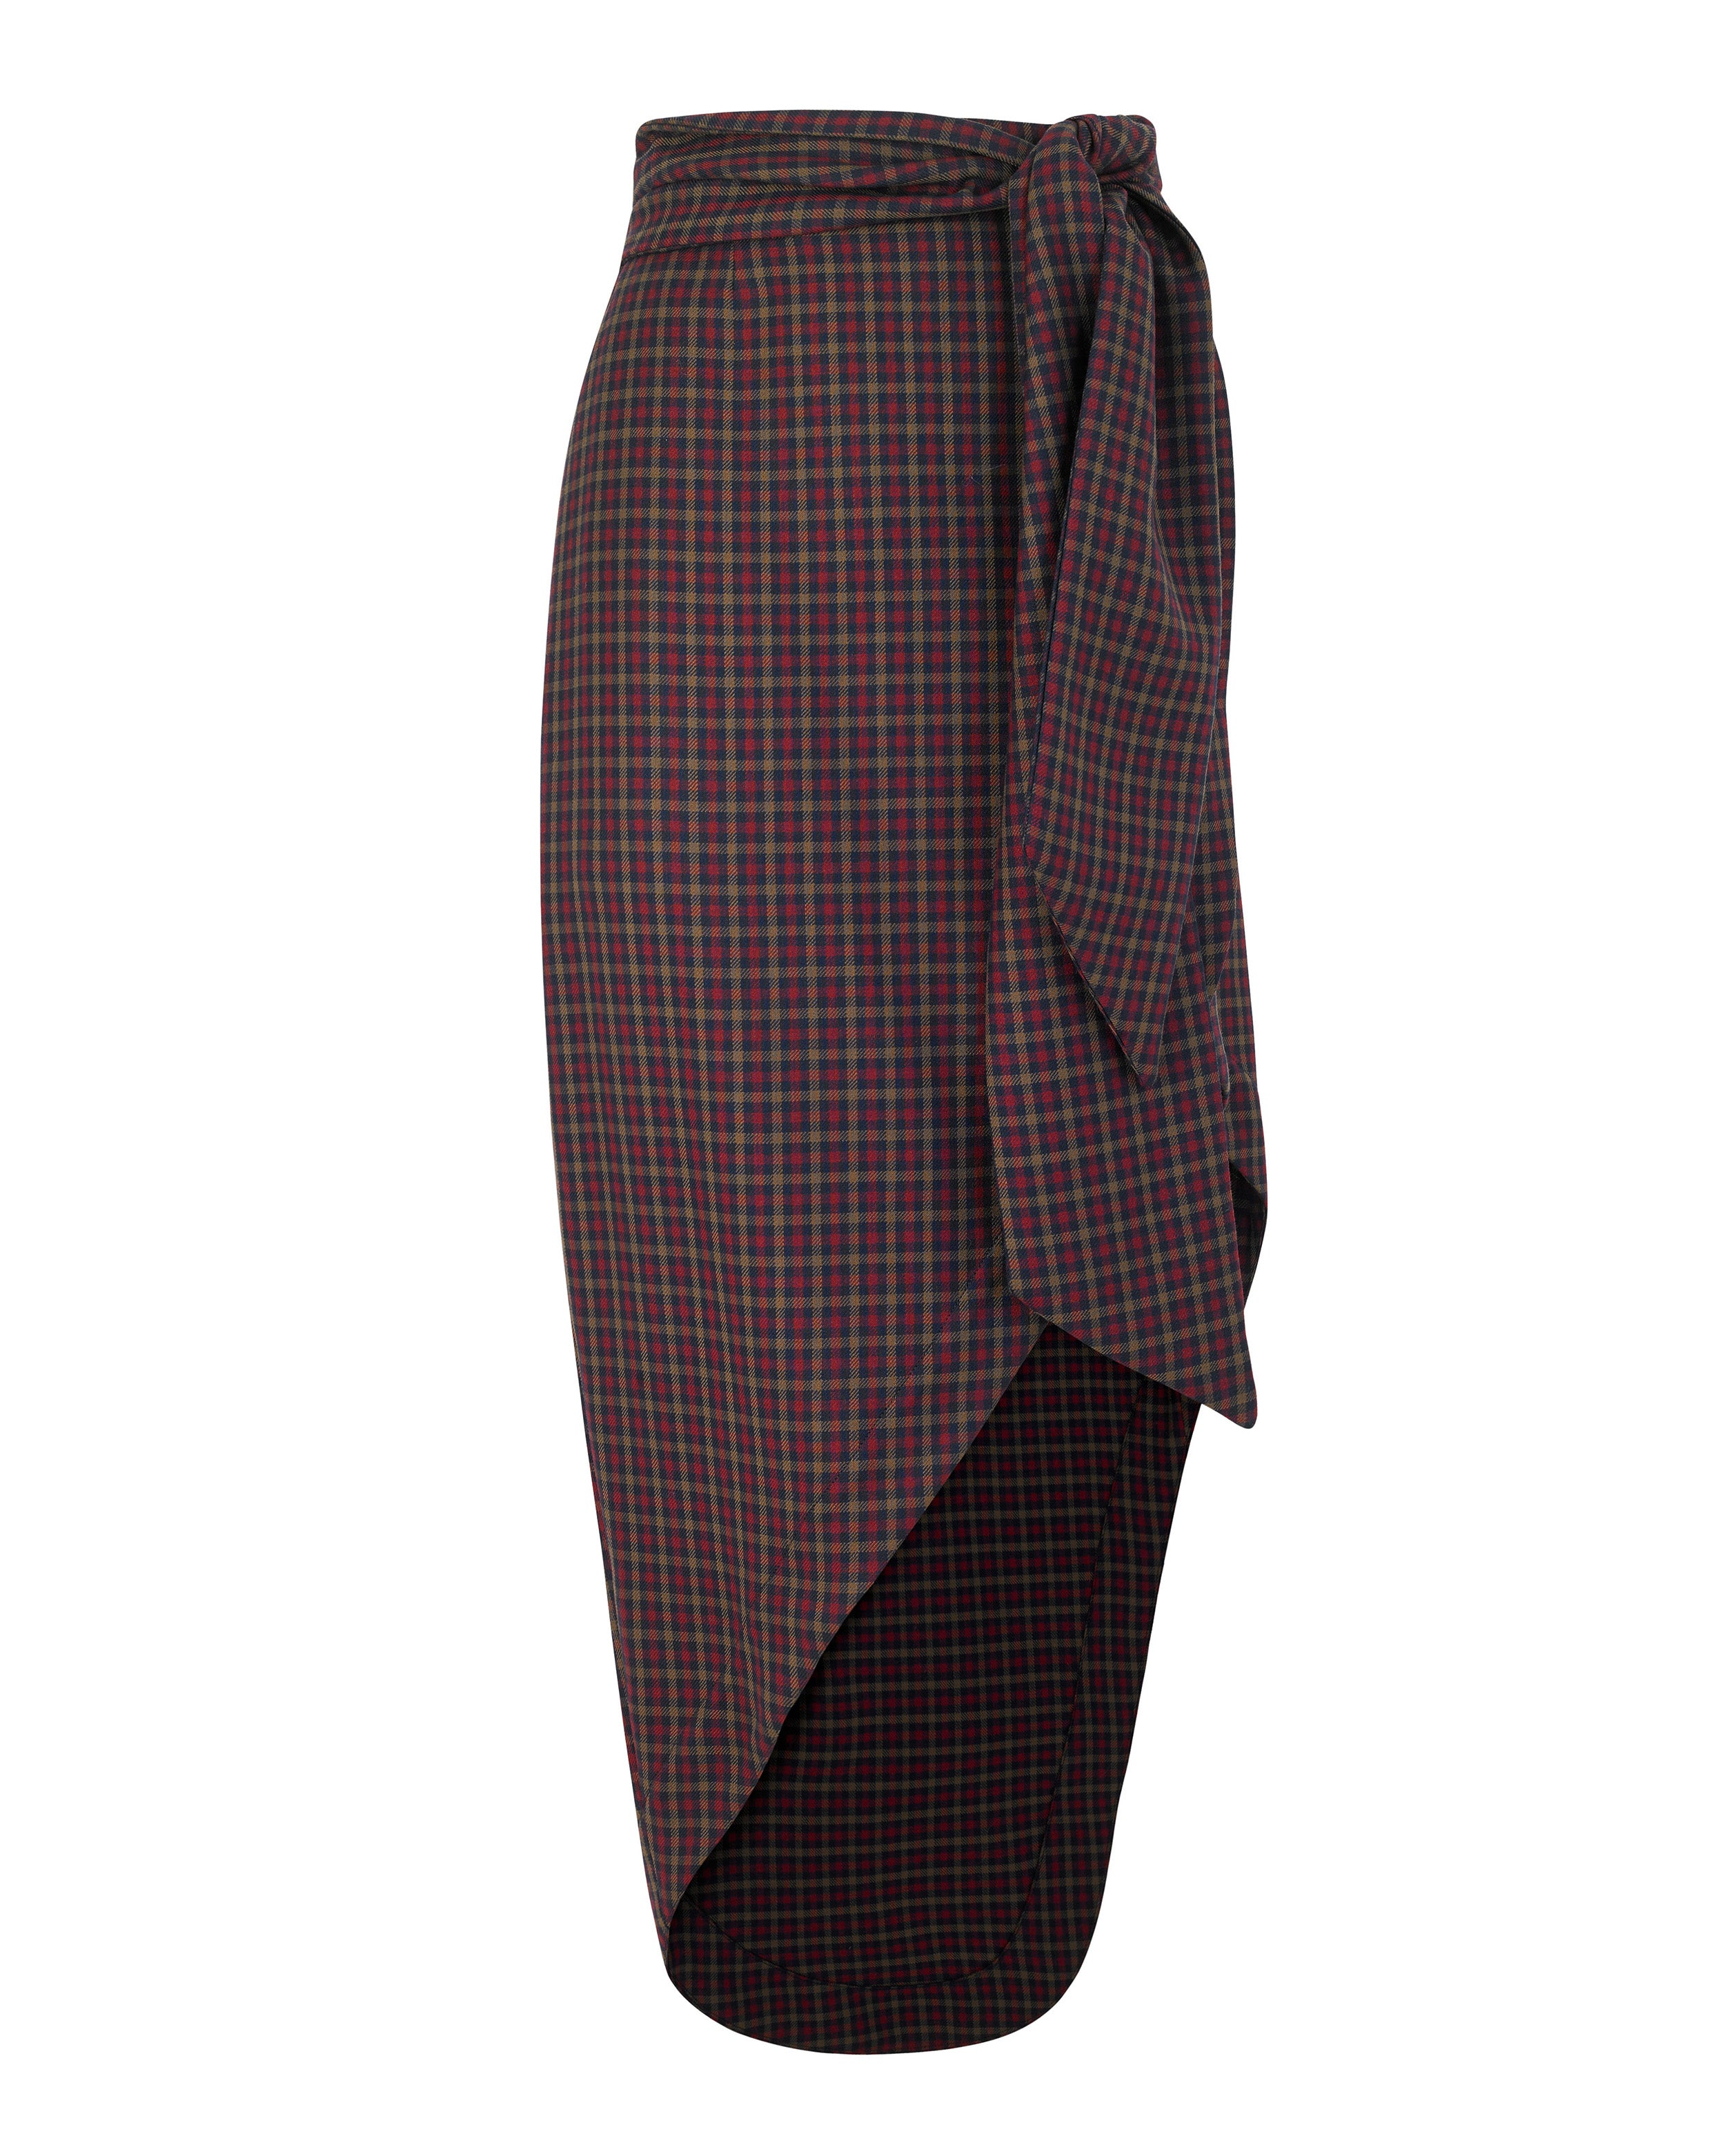 Salvadore Skirt in Autunno Check